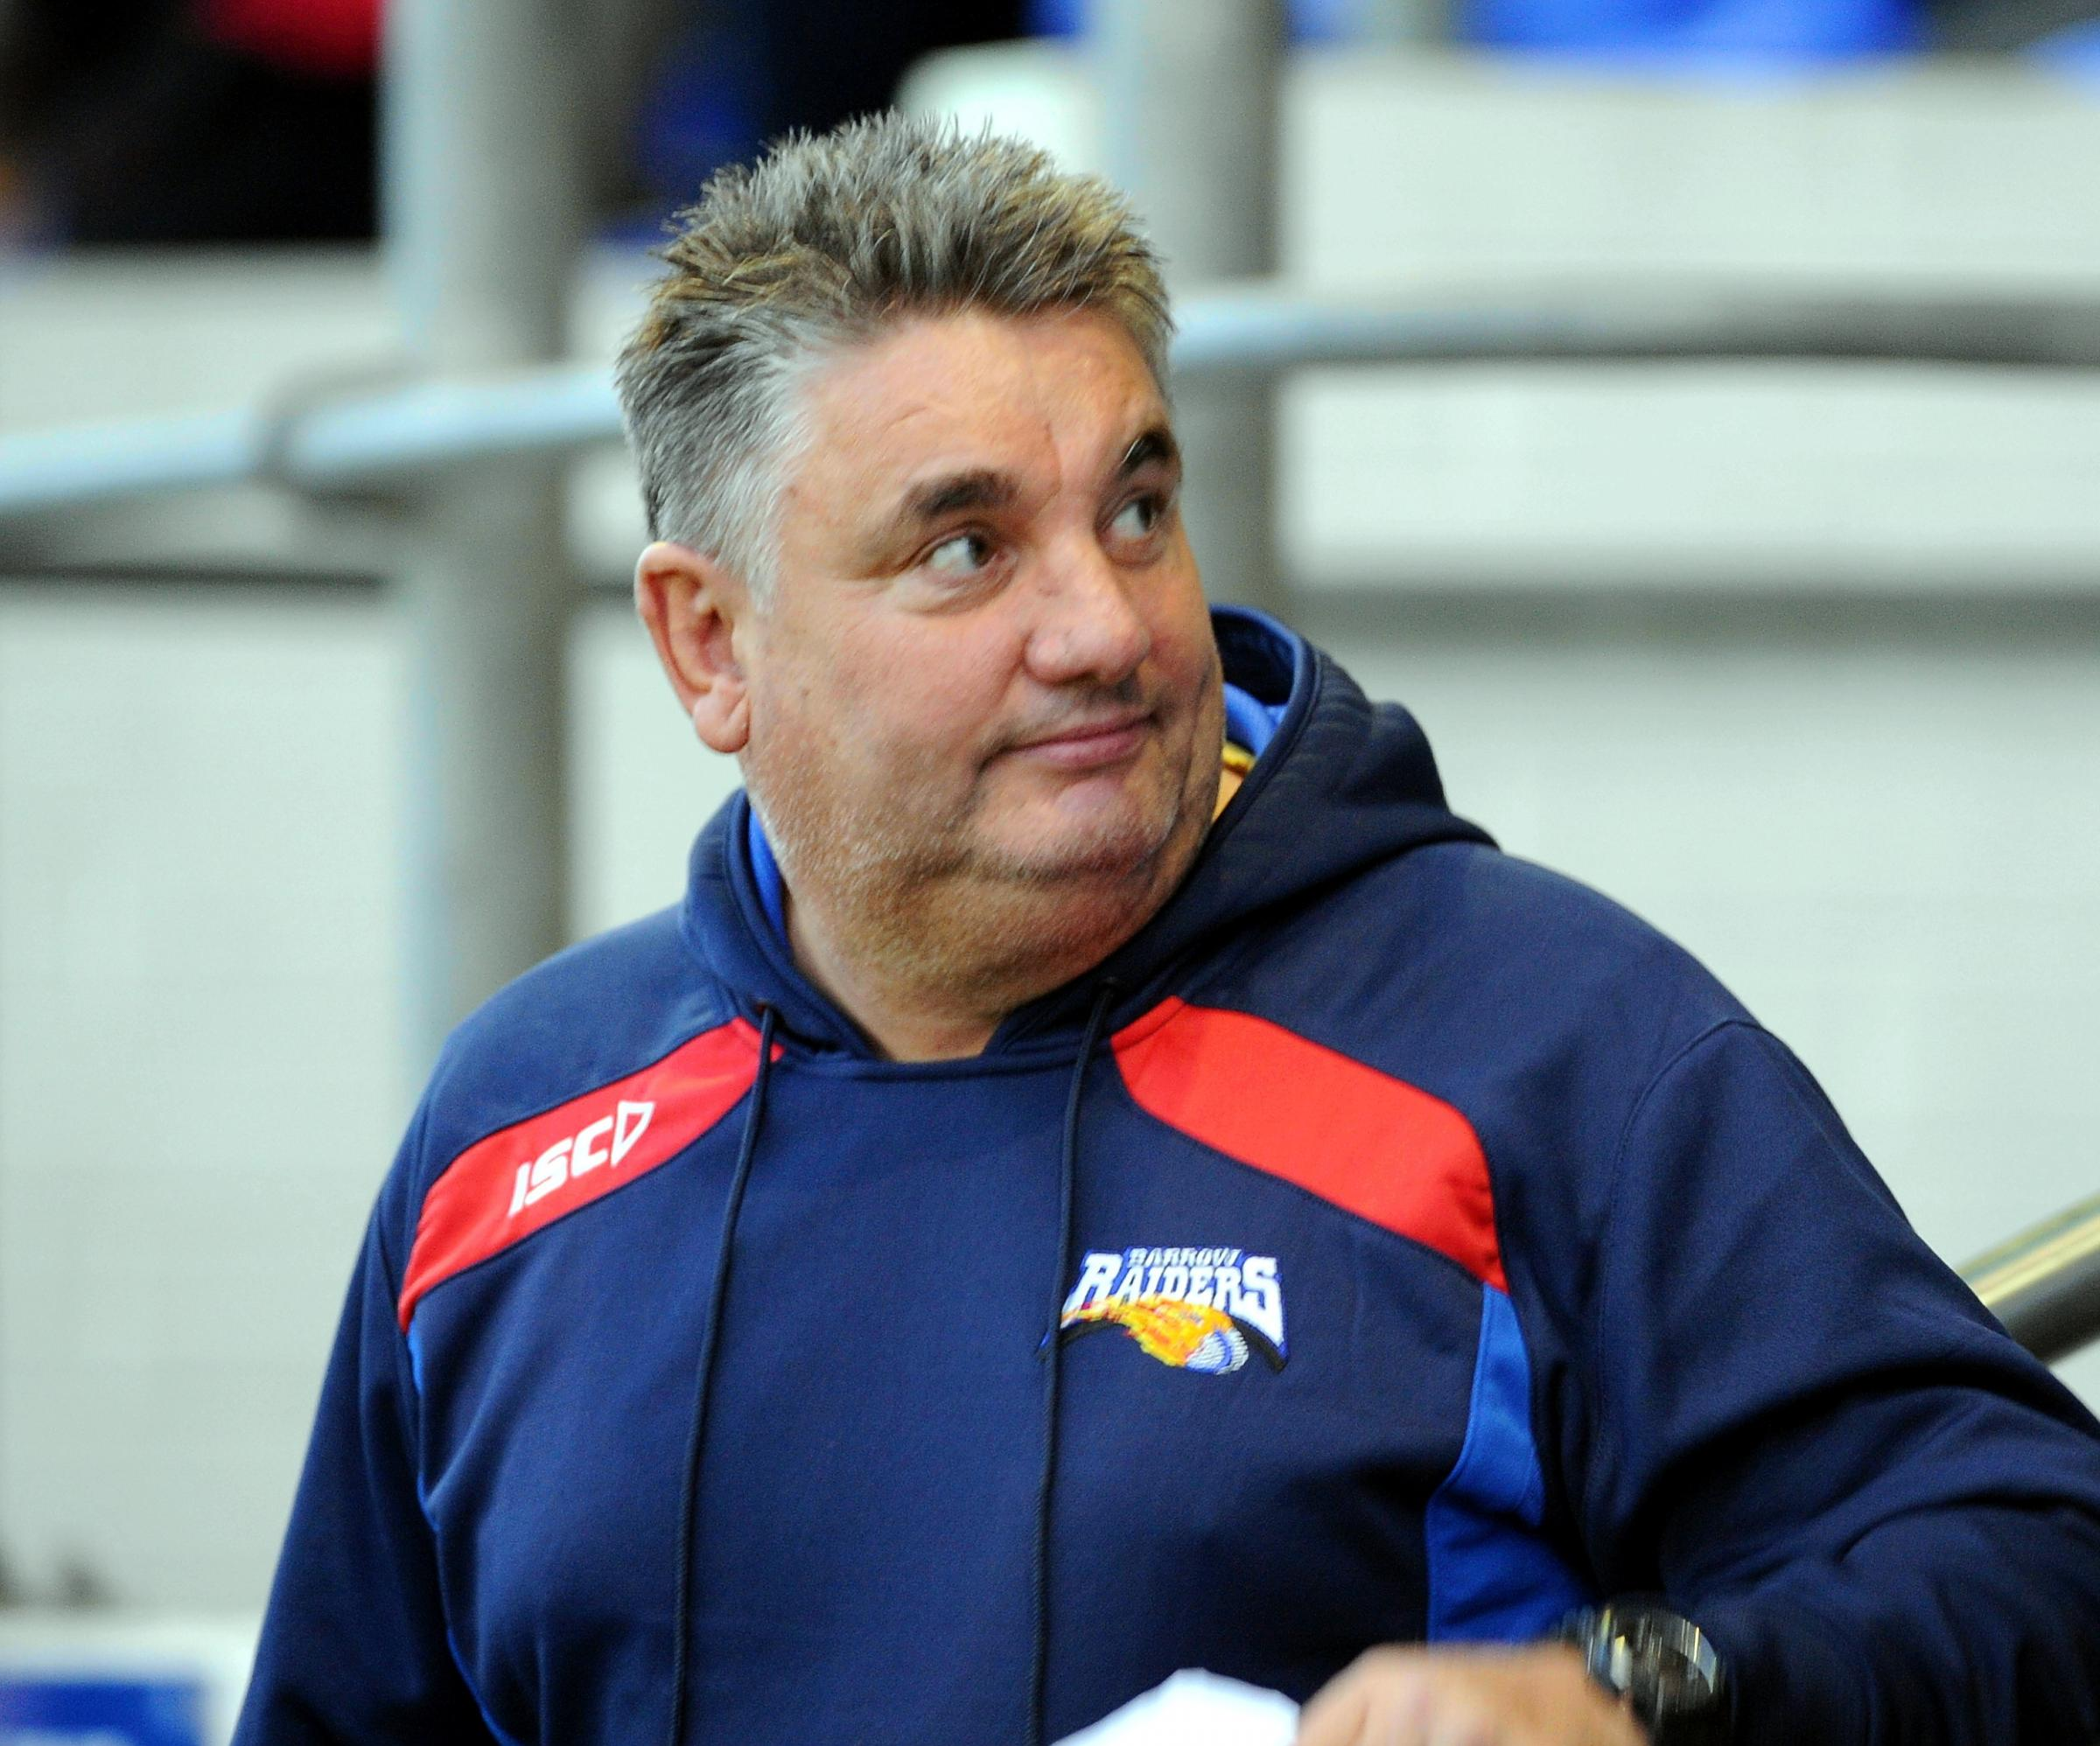 Barrow Raiders V Barrow and District Select - Coach - Paul Crarey 27/12/2015 JON GRANGER